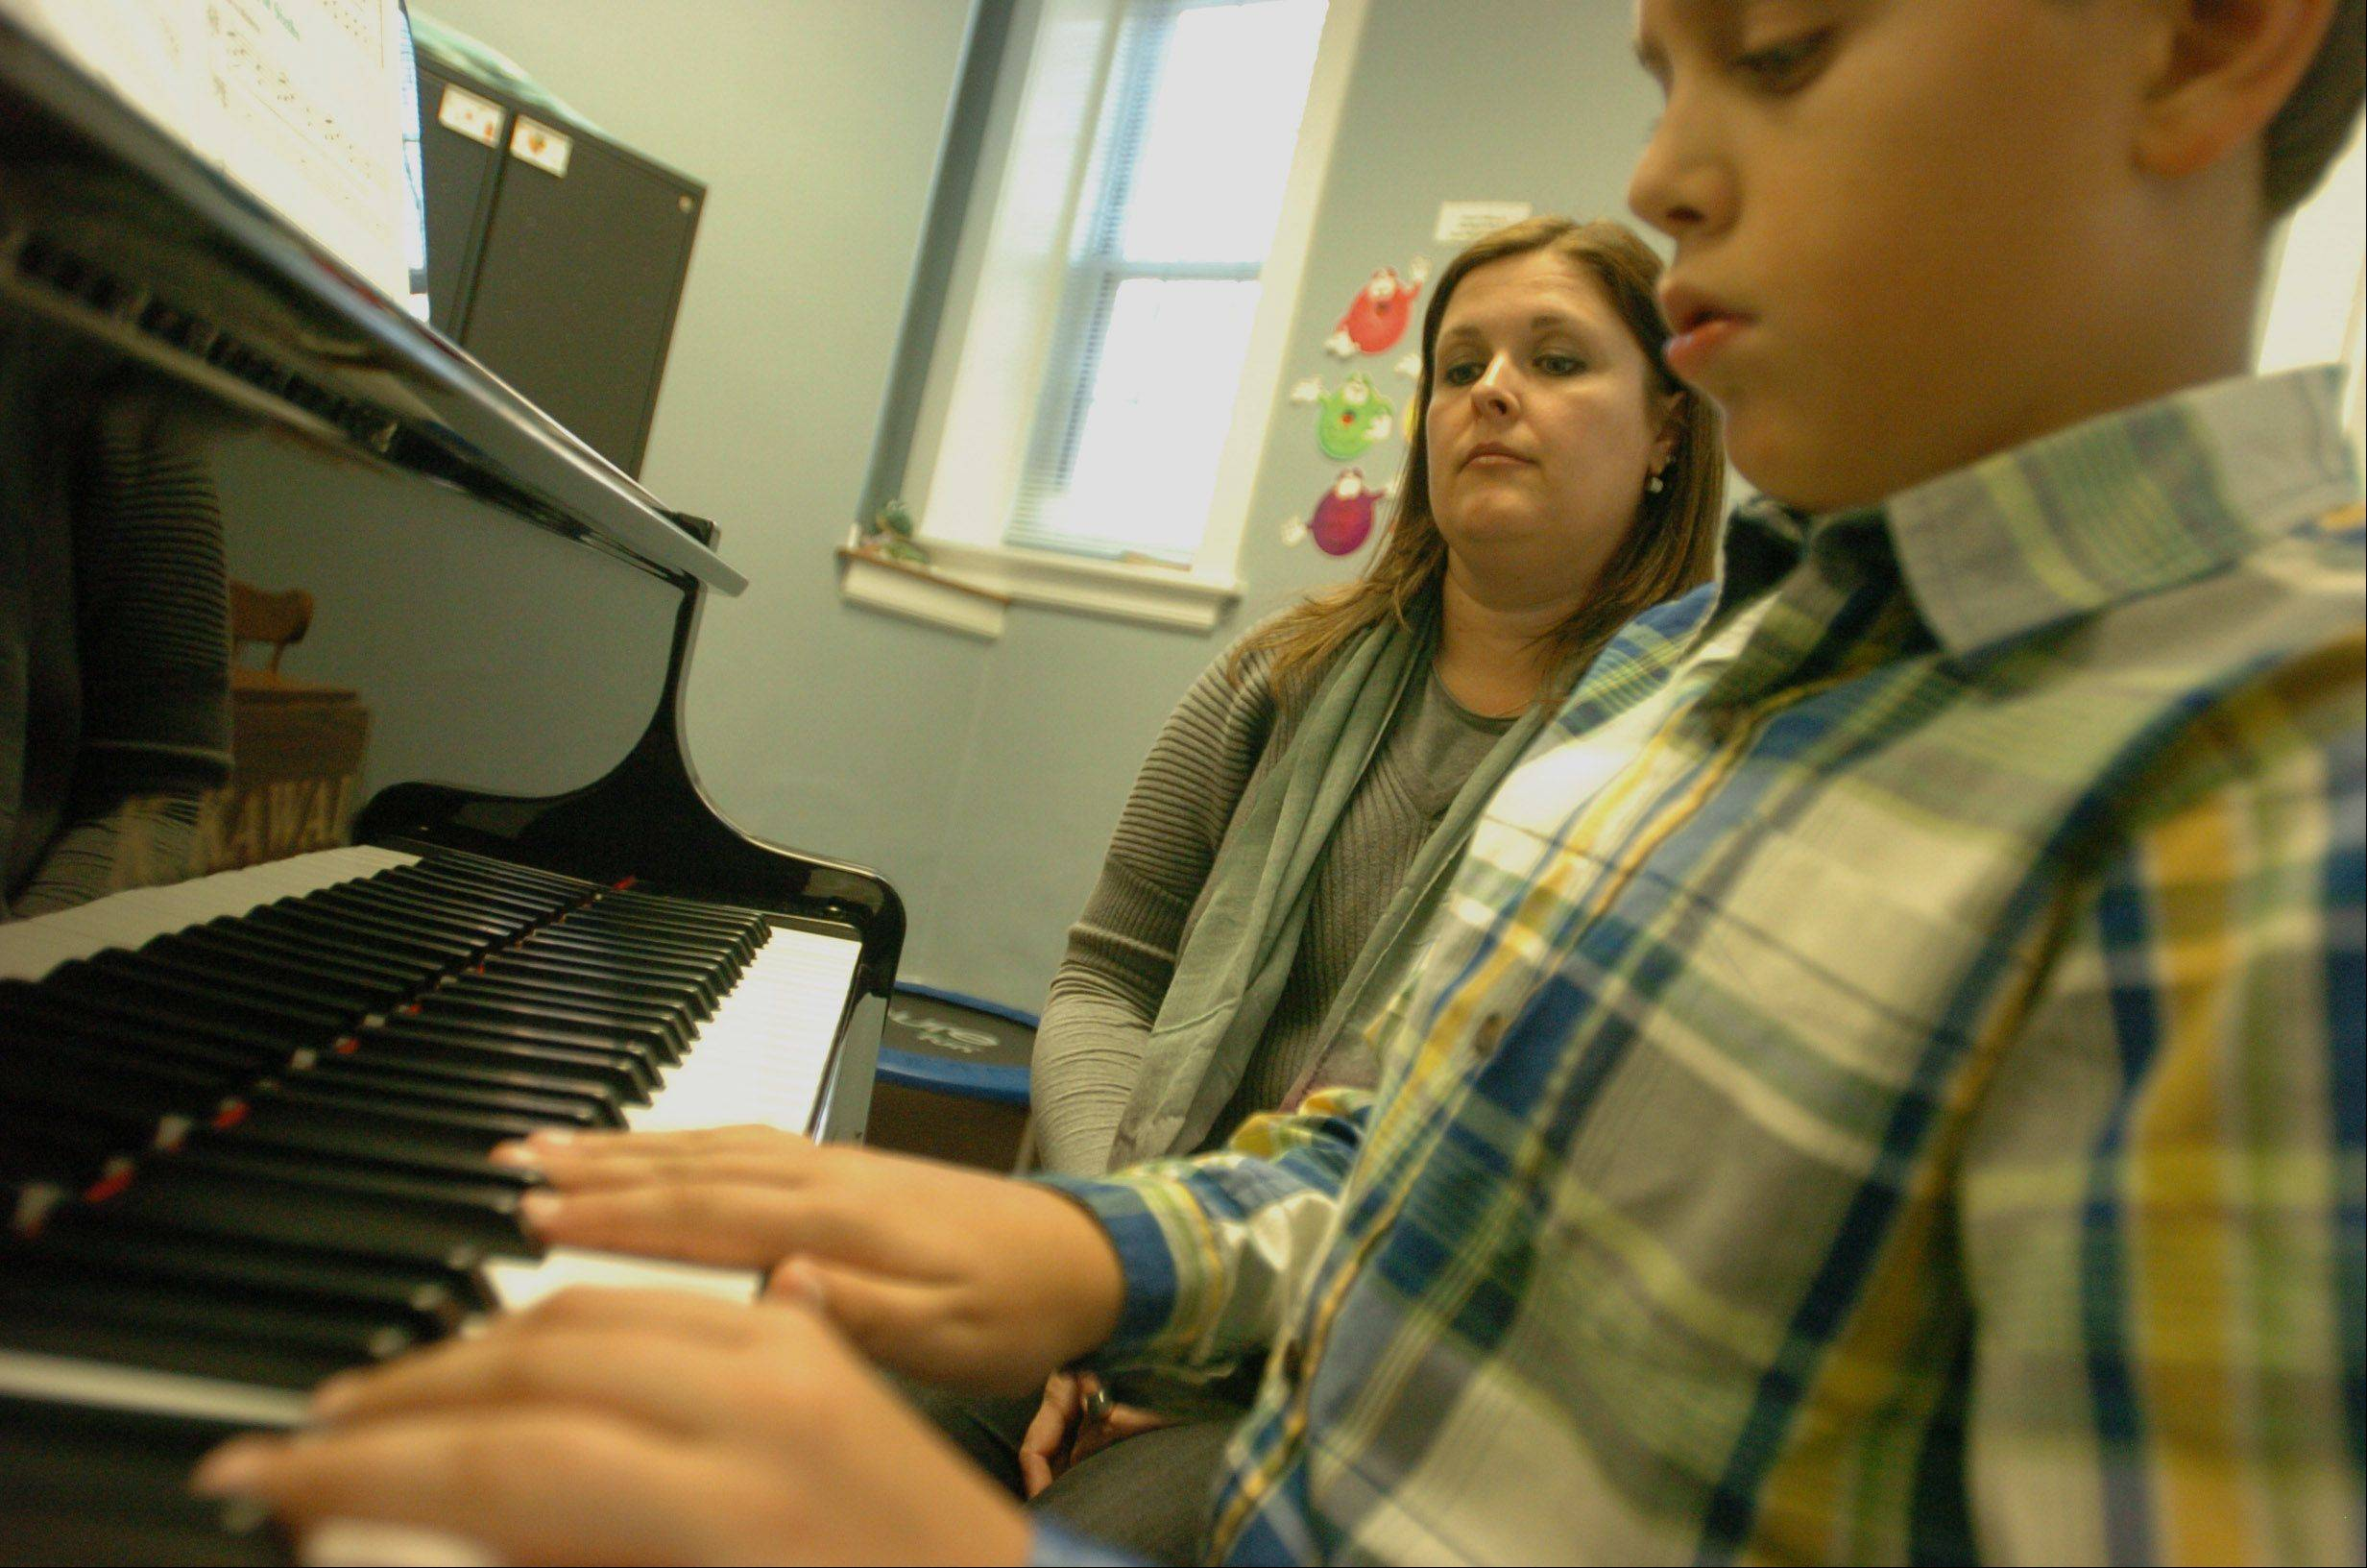 Jackson Finken works on a piece of music with his Beethoven's Buddies teacher Beth Bauer at his side. The program, operated by the Community School of the Arts at Wheaton College, teaches music to children with disabilities.